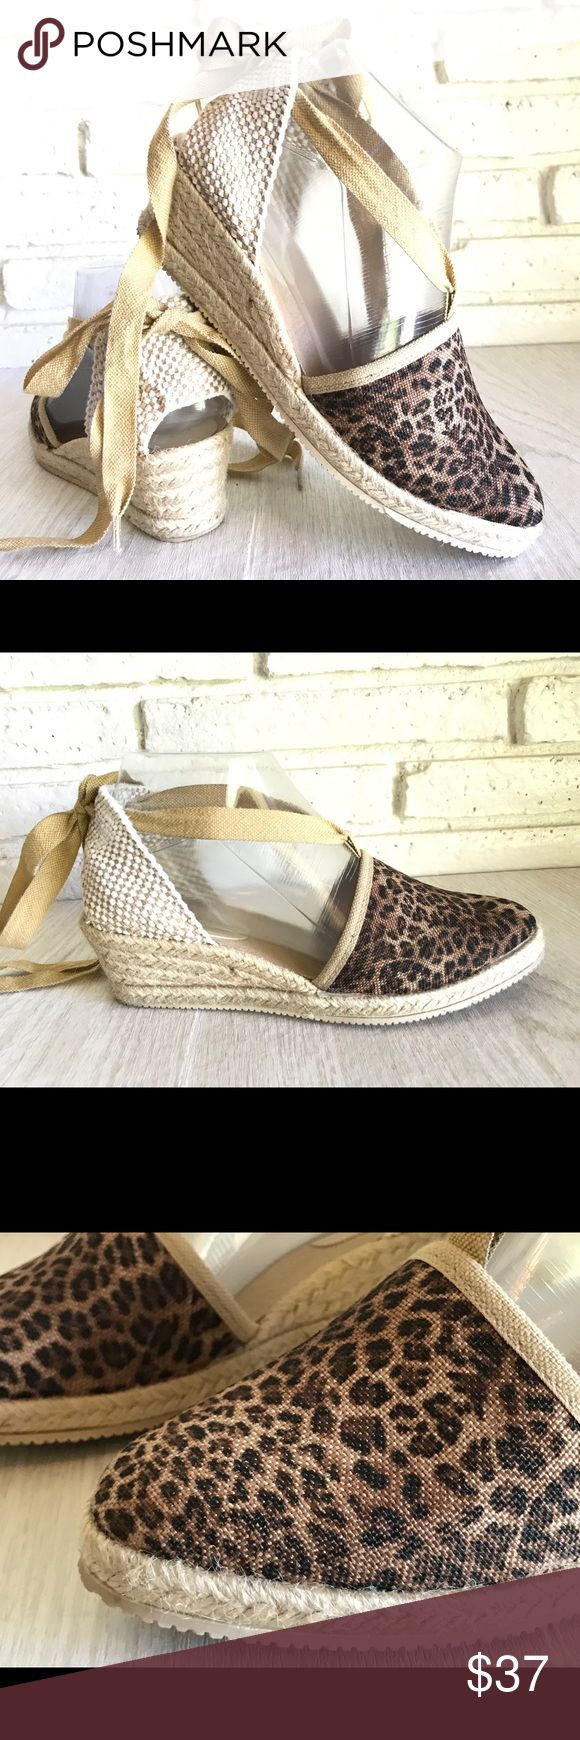 """Leopard Print Espadrille Wedge Sandals Size 7 ILSE JACOBSEN Women's Sand Nomad 54 Espadrille Sandal Size 7  Canvas  Rubber sole  Heel measures approximately 2""""  Platform measures approximately 0.50""""  Mixed-texture espadrille with closed toe and wraparound ankle strap  Jute-wrapped wedge  In excellent condition  Leopard print canvas espadrilles. 135 cm cotton lace to drape around the leg. The classic raffia wedge sole comes with an rubber outsole. Ilse Jacobsen Shoes Espadrilles"""